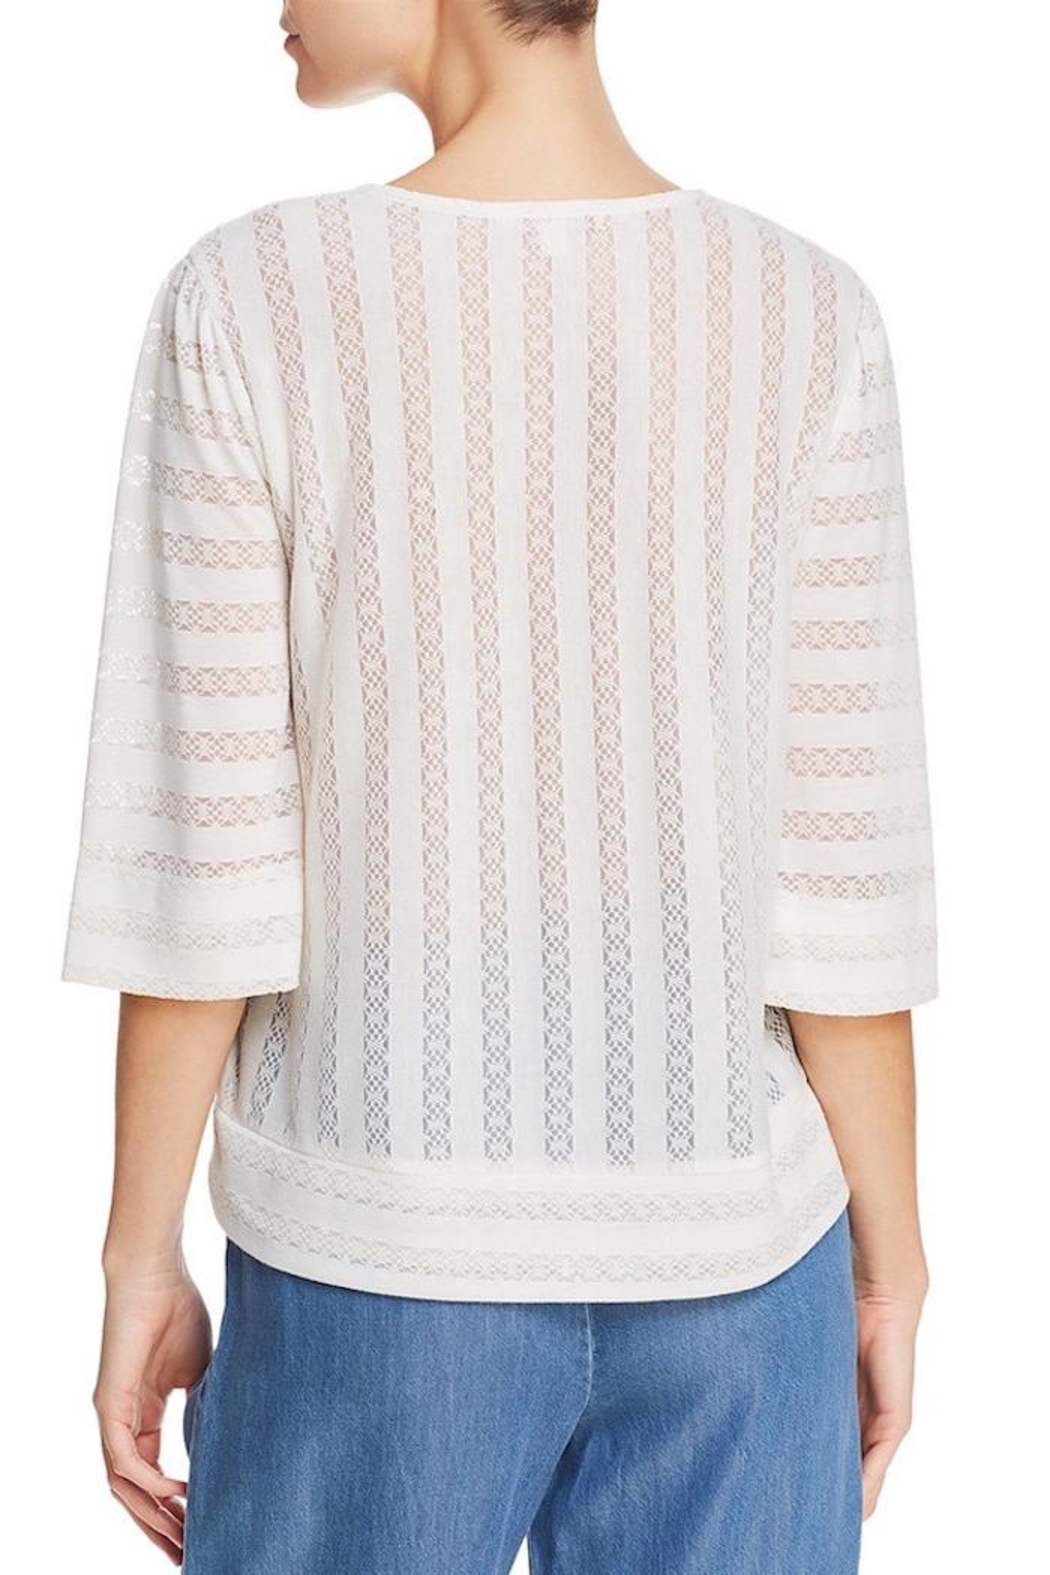 Ella Moss Lace-Detailed Blouse - Front Full Image